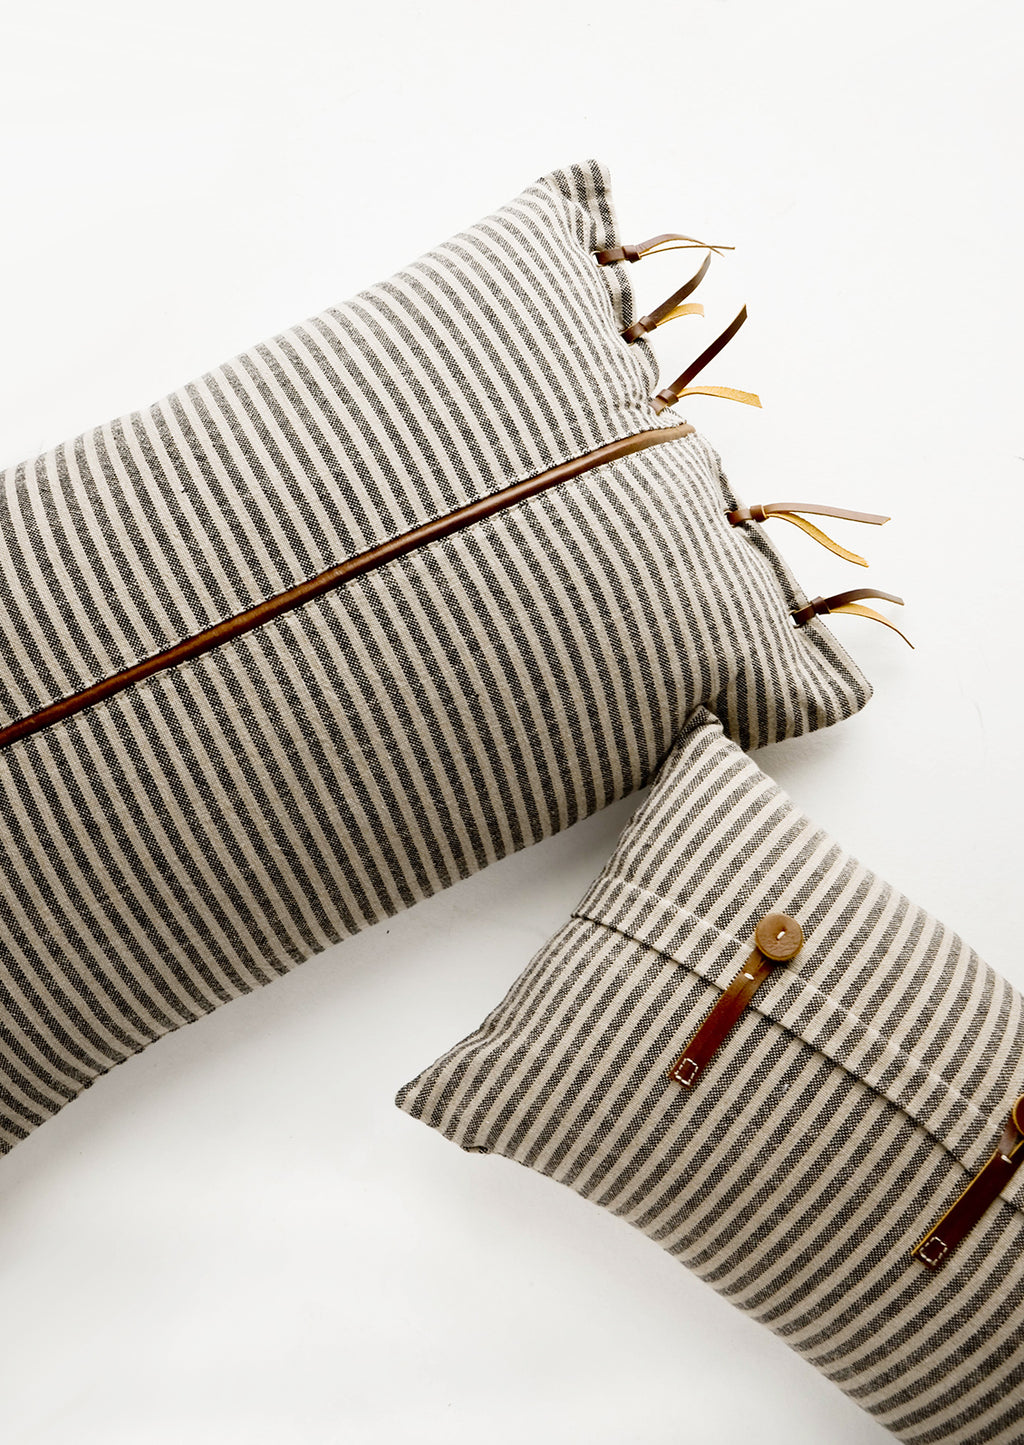 3: Lumbar throw pillows in tan and black striped fabric with brown leather details